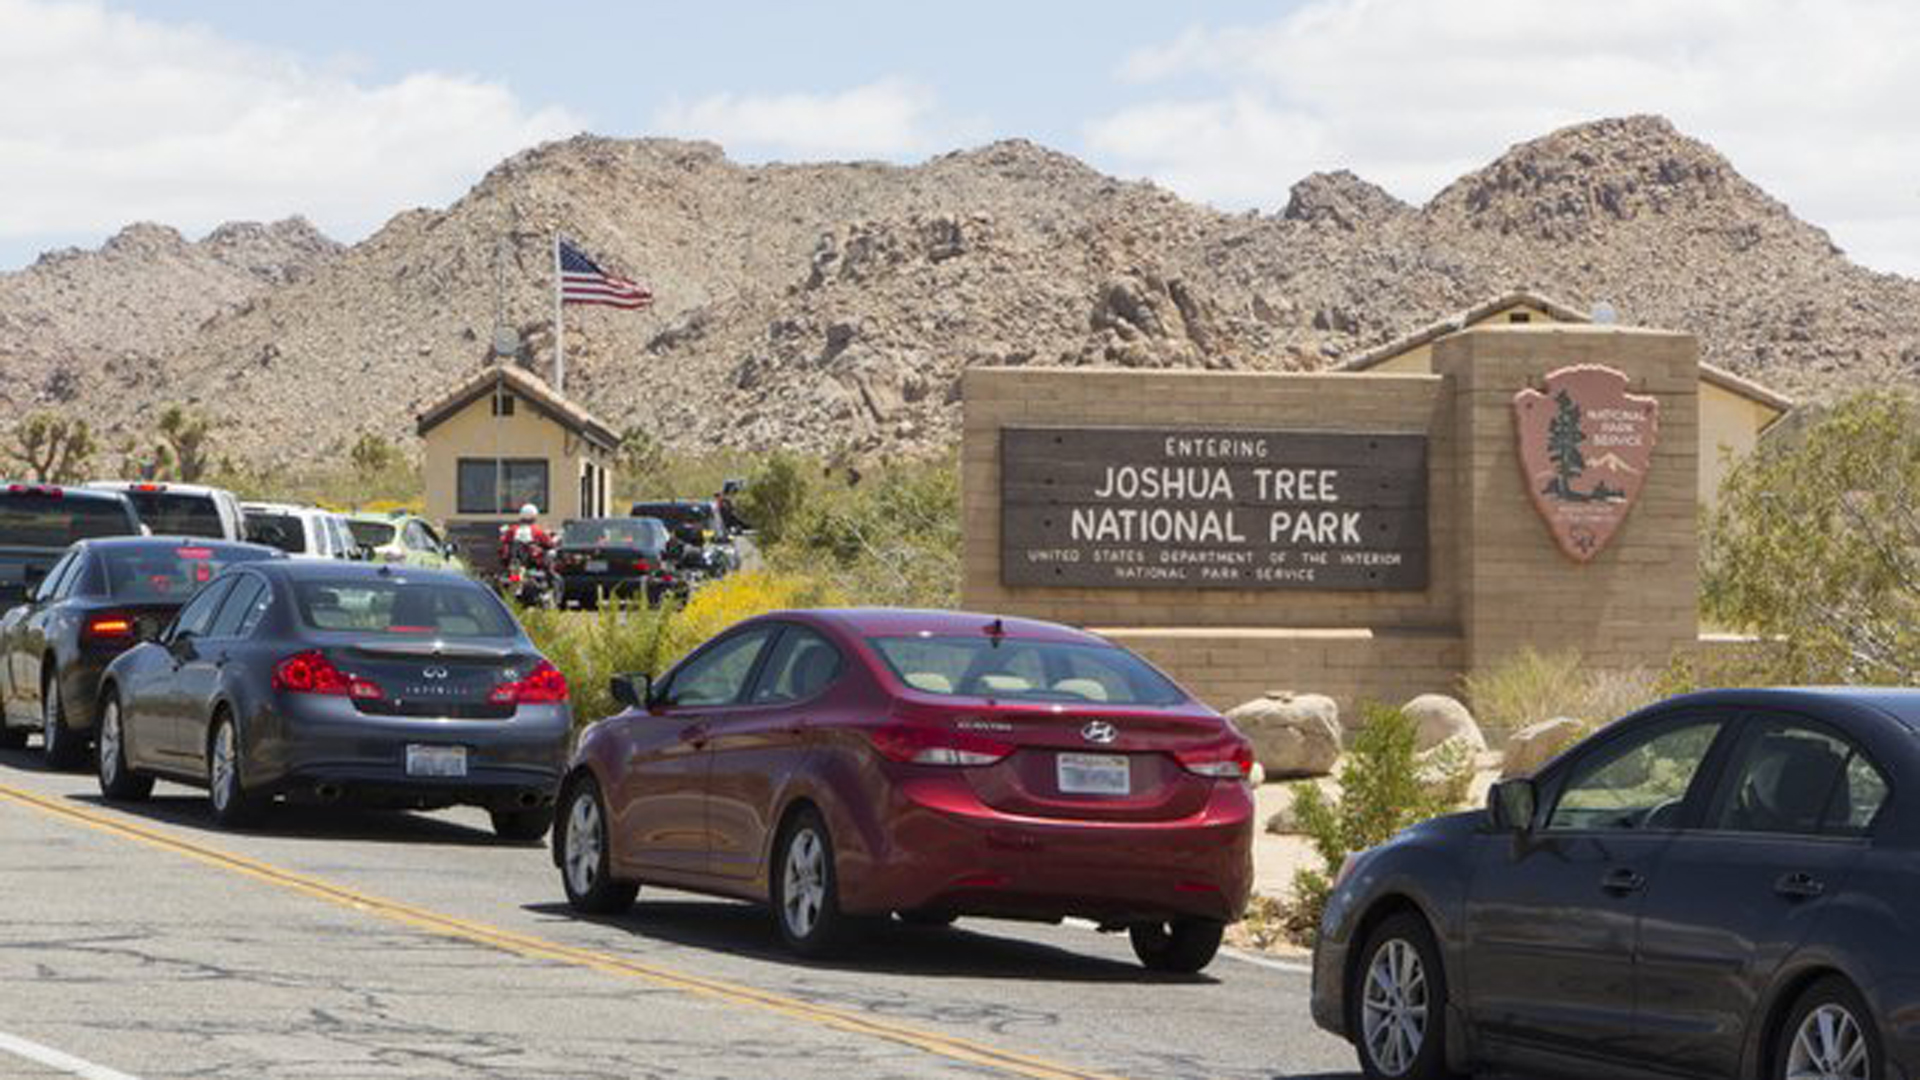 Joshua Tree National Park tweeted out this photo on Dec. 20, 2019.